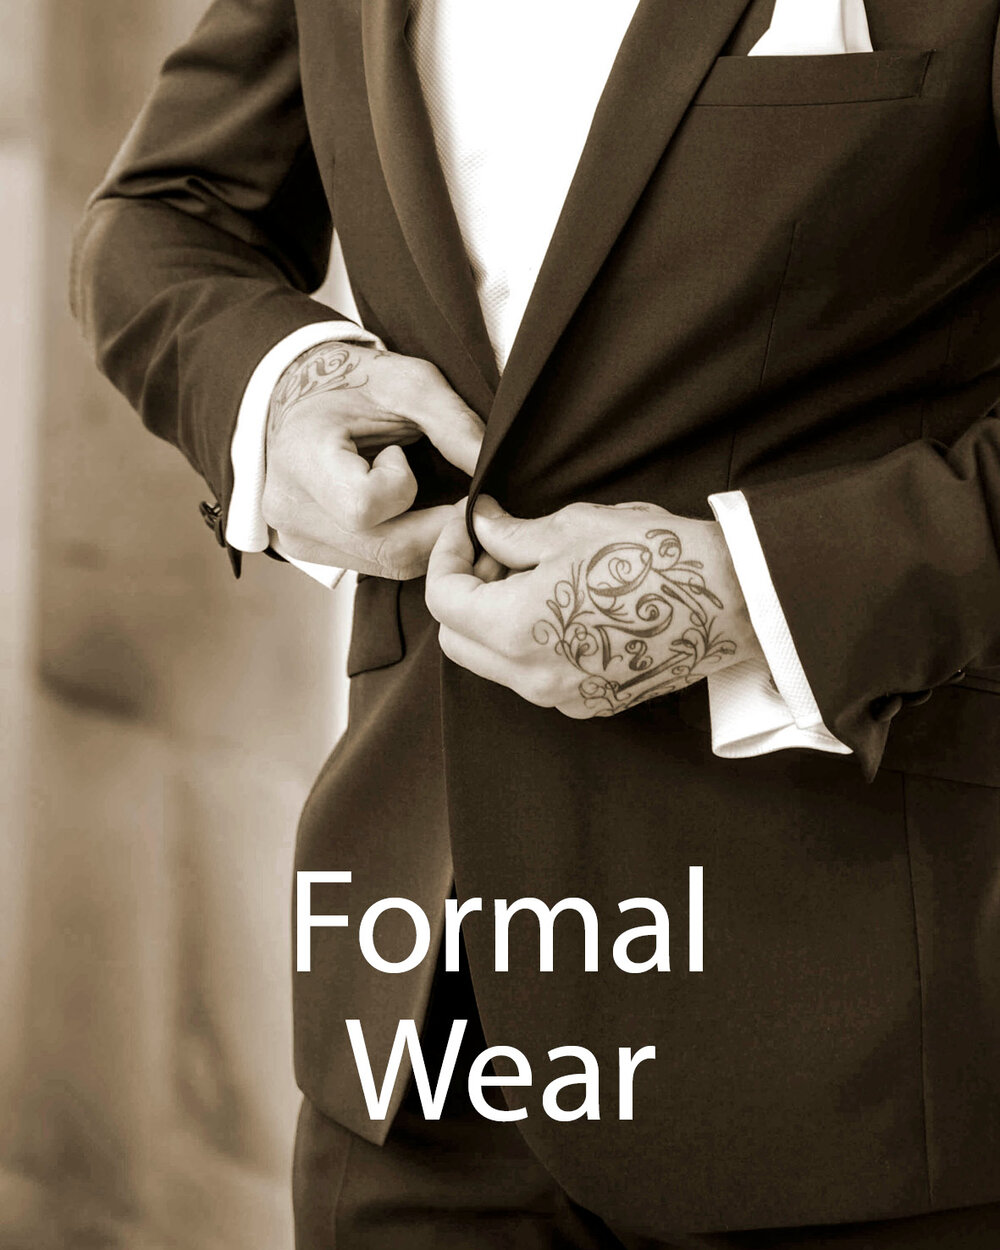 Image gateway to Formal Wear page on Symonds of Hereford website